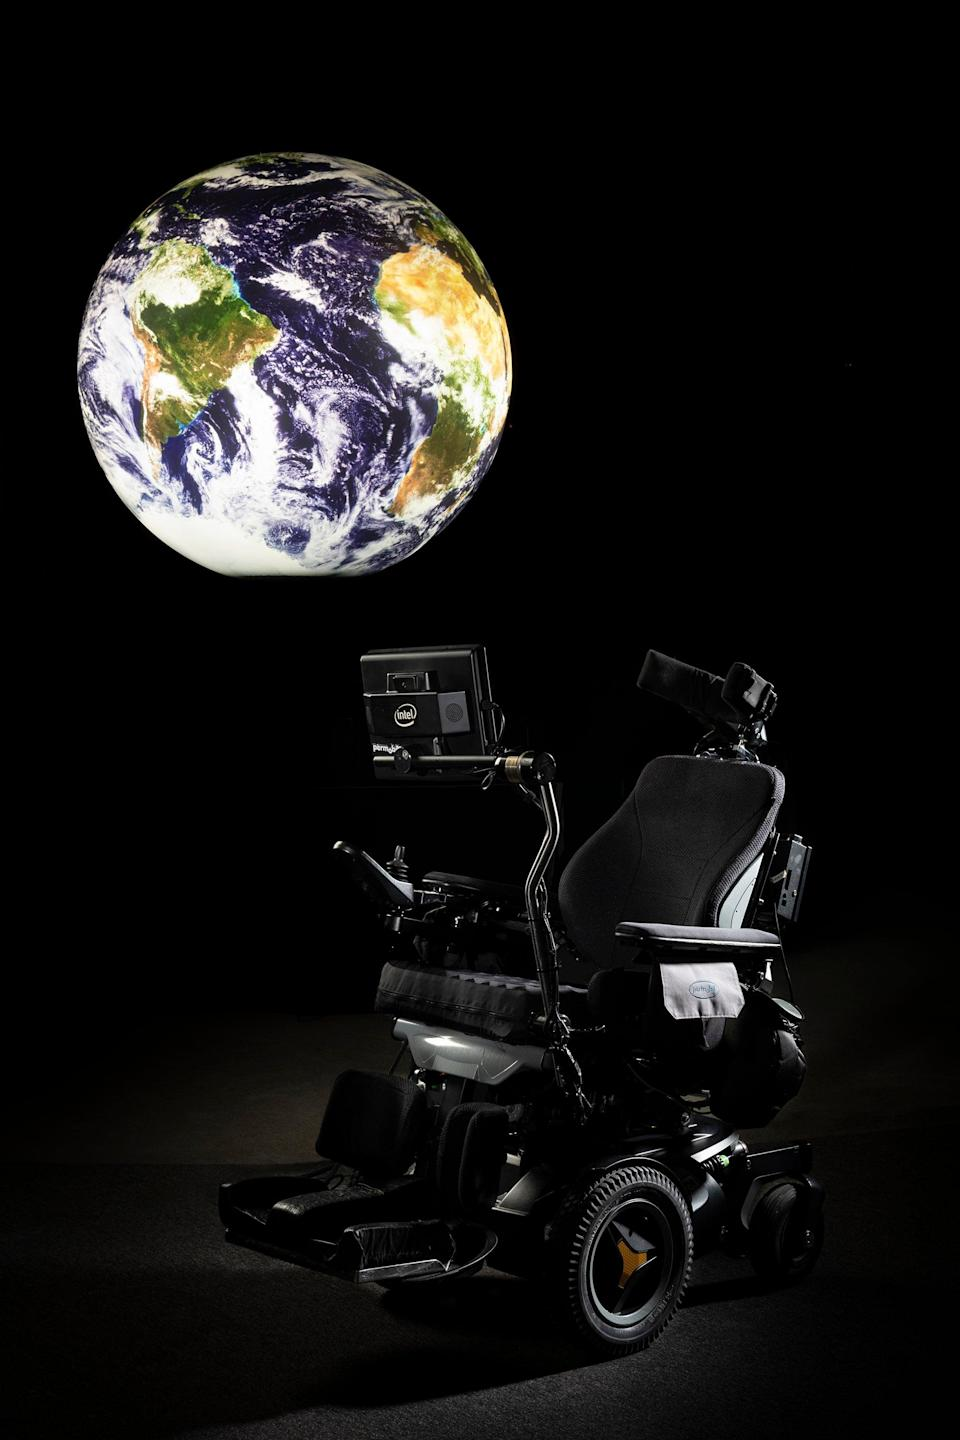 Stephen Hawking's wheelchair at the Science Museum (Mary Freeman & Jennie Hills)